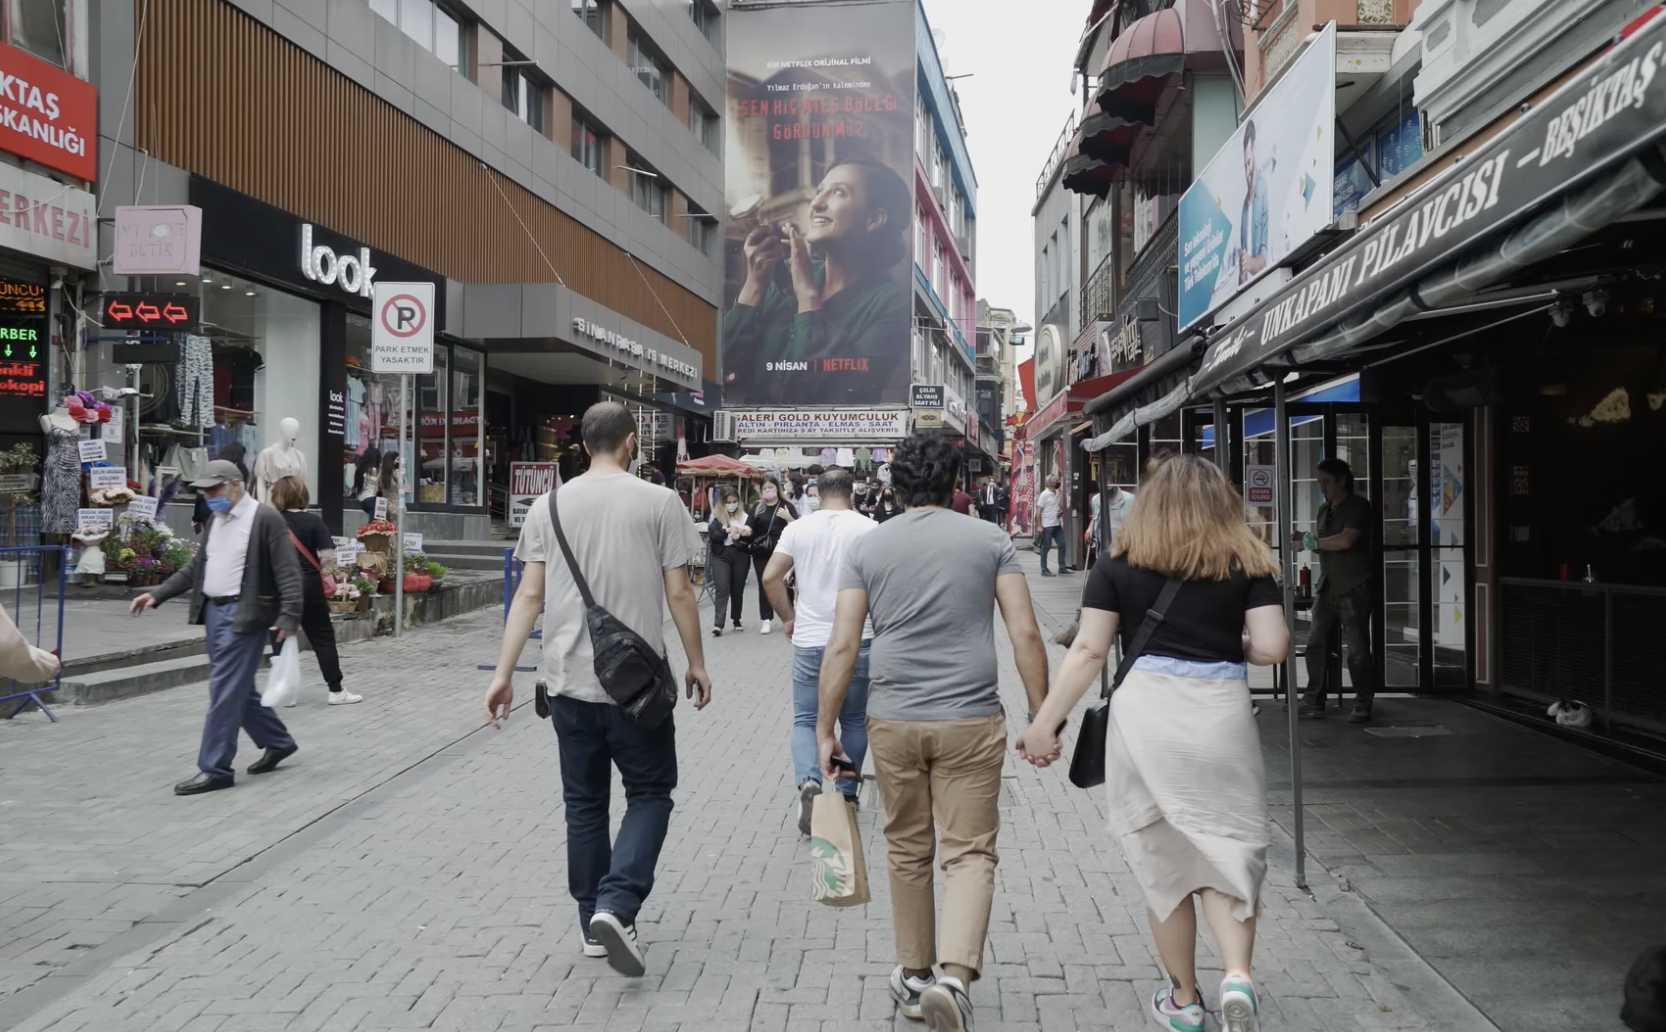 İrem Özkan walking in Istanbul with her husband